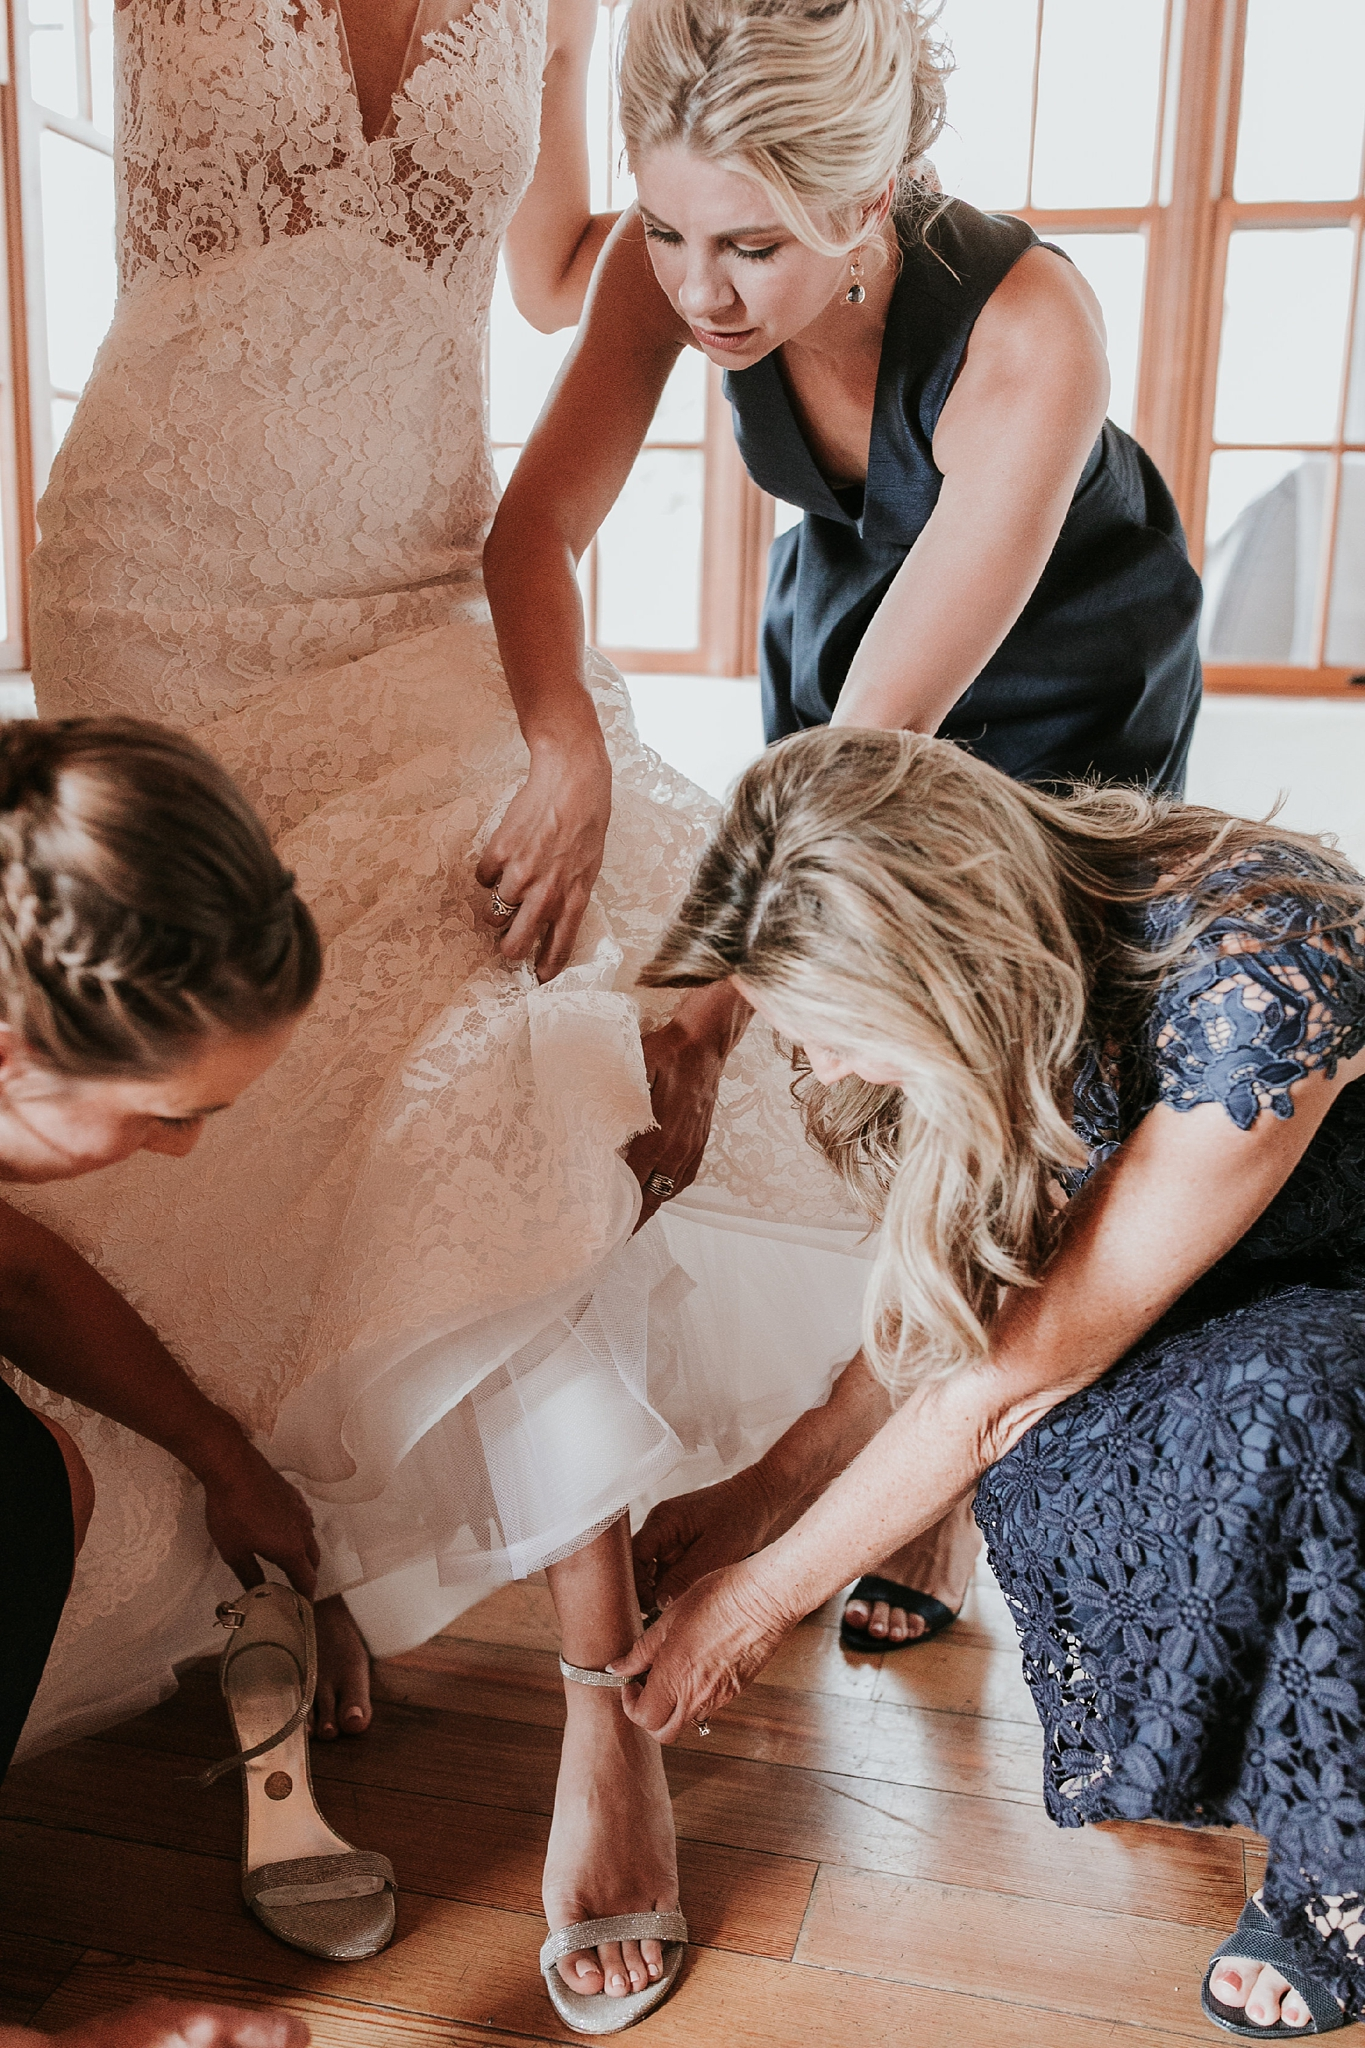 Alicia+lucia+photography+-+albuquerque+wedding+photographer+-+santa+fe+wedding+photography+-+new+mexico+wedding+photographer+-+new+mexico+wedding+-+new+mexico+wedding+-+colorado+wedding+-+bridal+shoes+-+bridal+inspo_0039.jpg